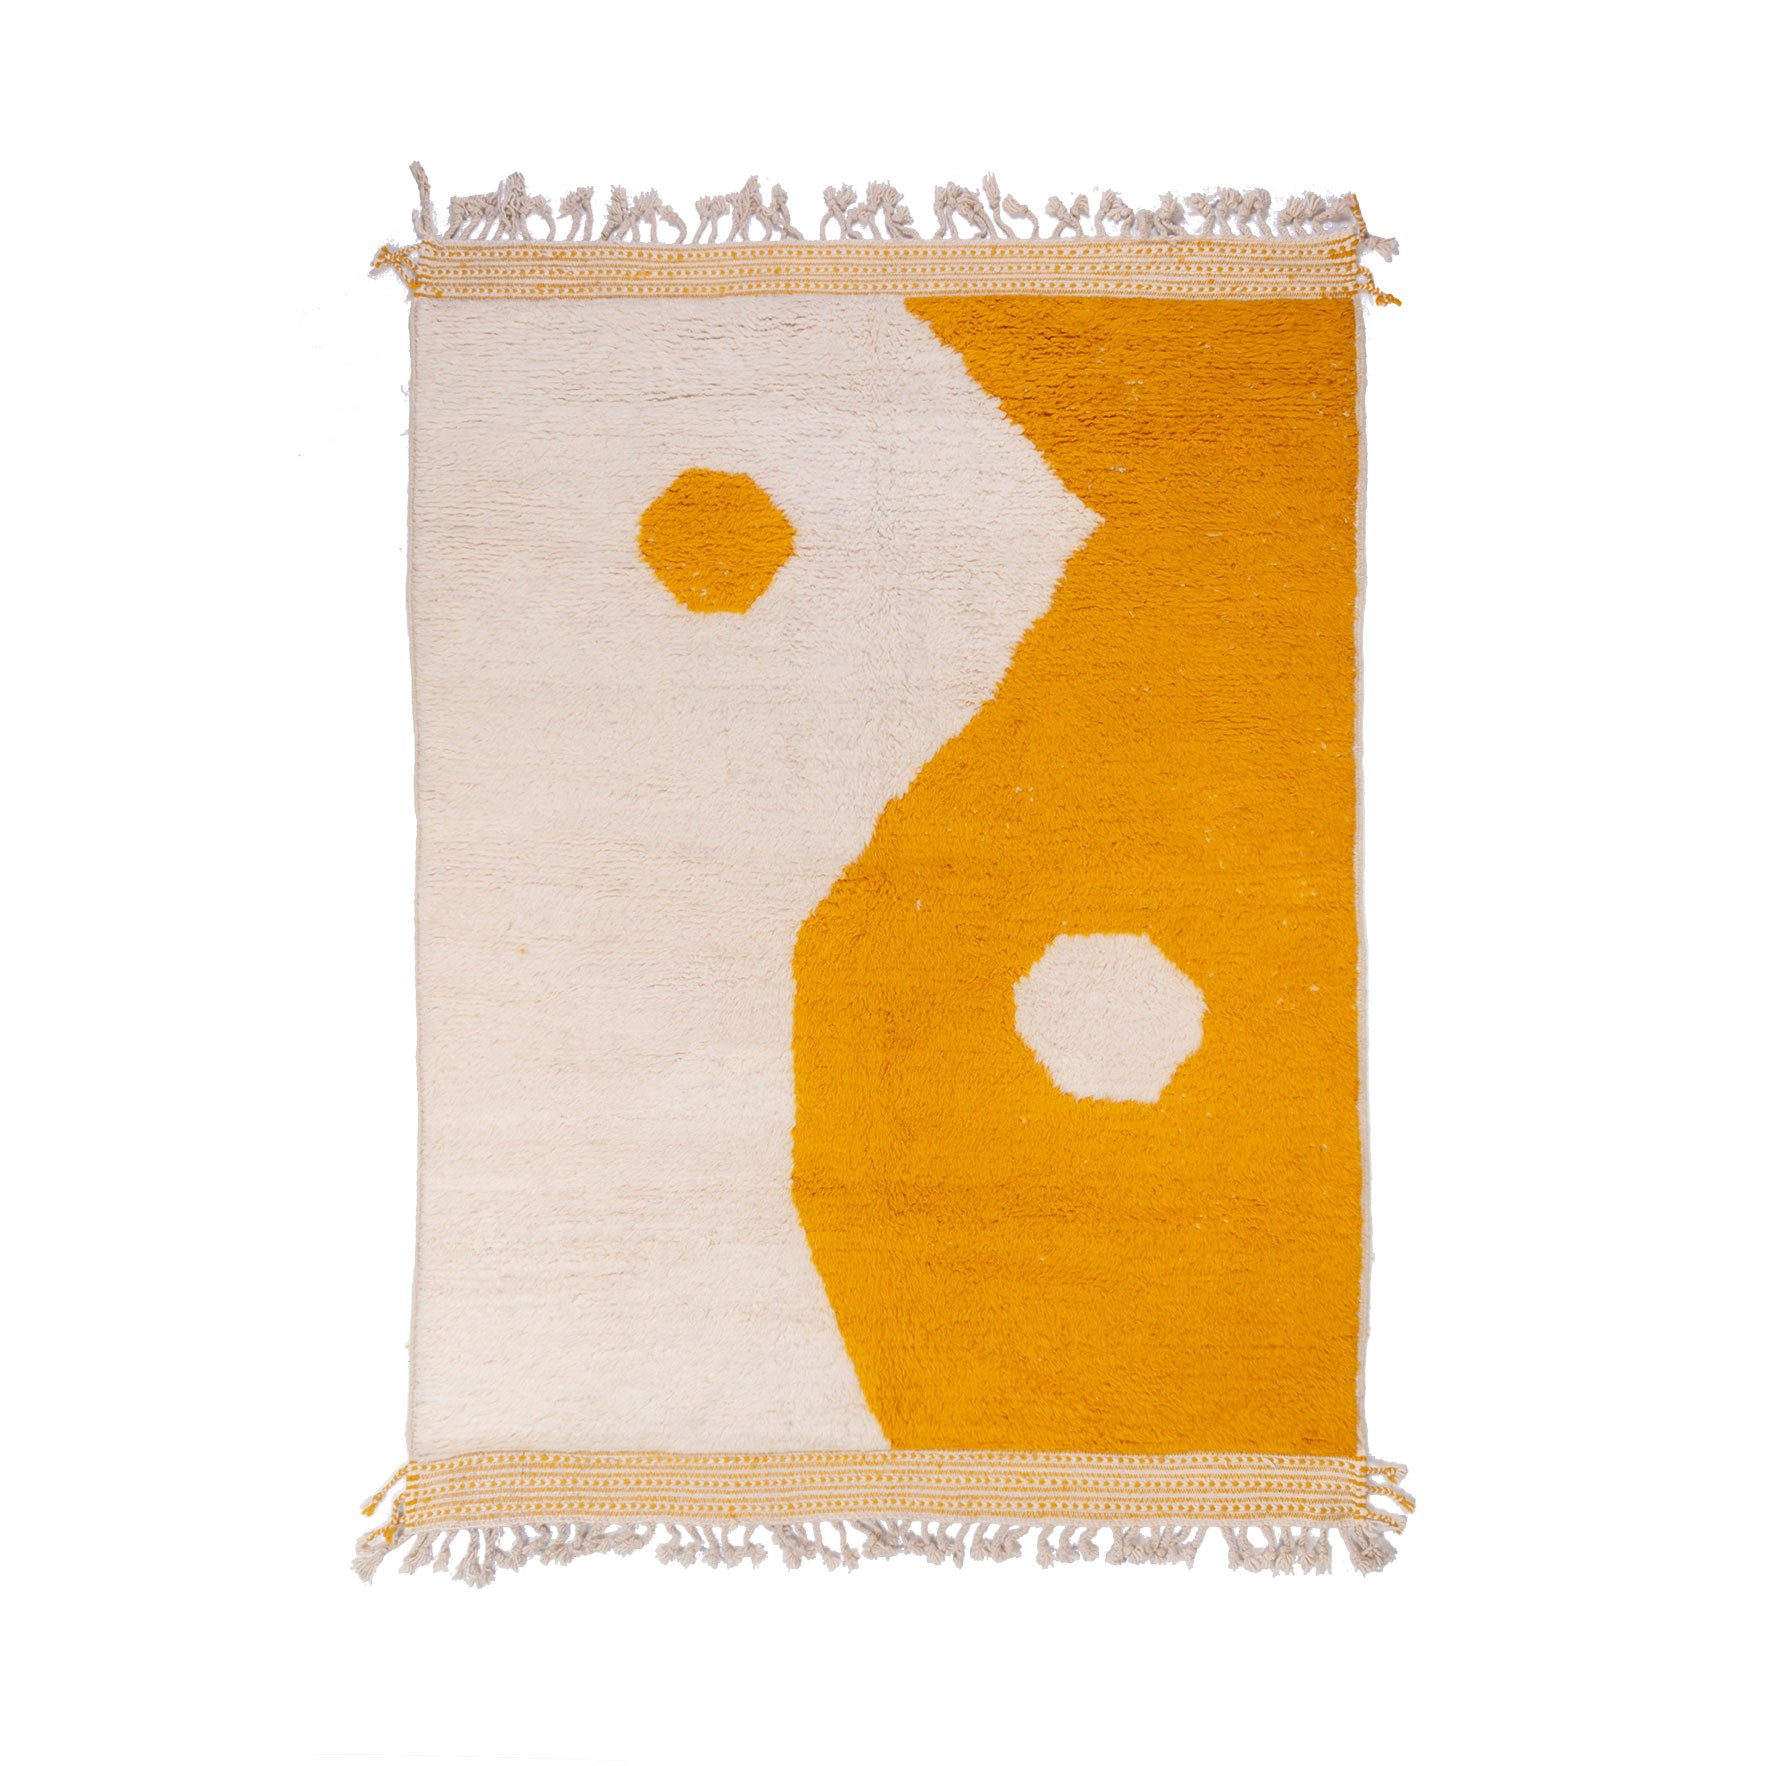 Beni Ouarain carpet Ying and Yang style in yellow and white